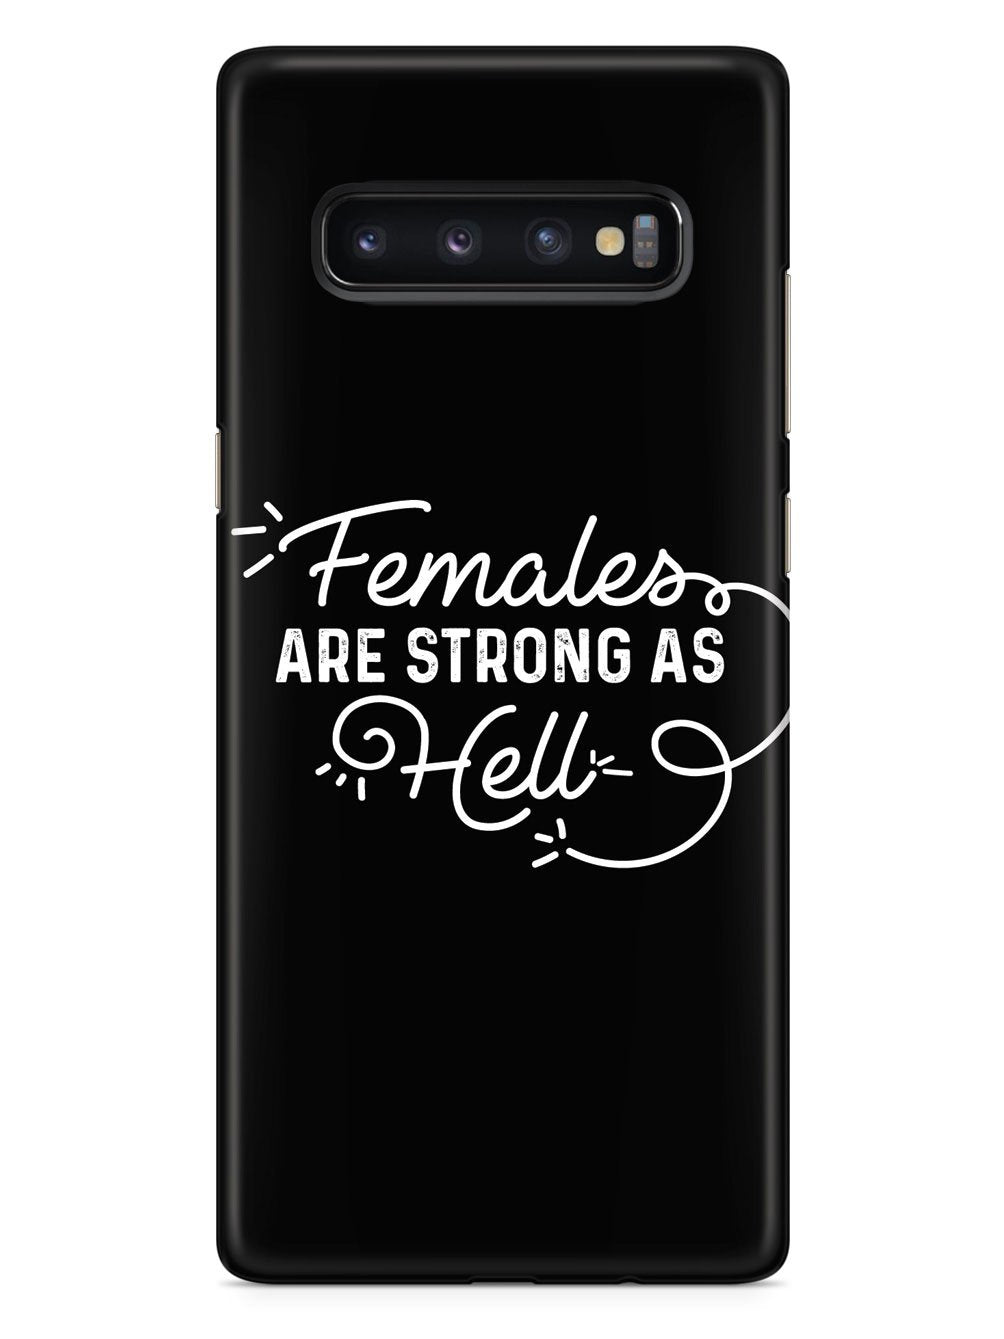 Females Are Strong As Hell - Black Case - pipercleo.com